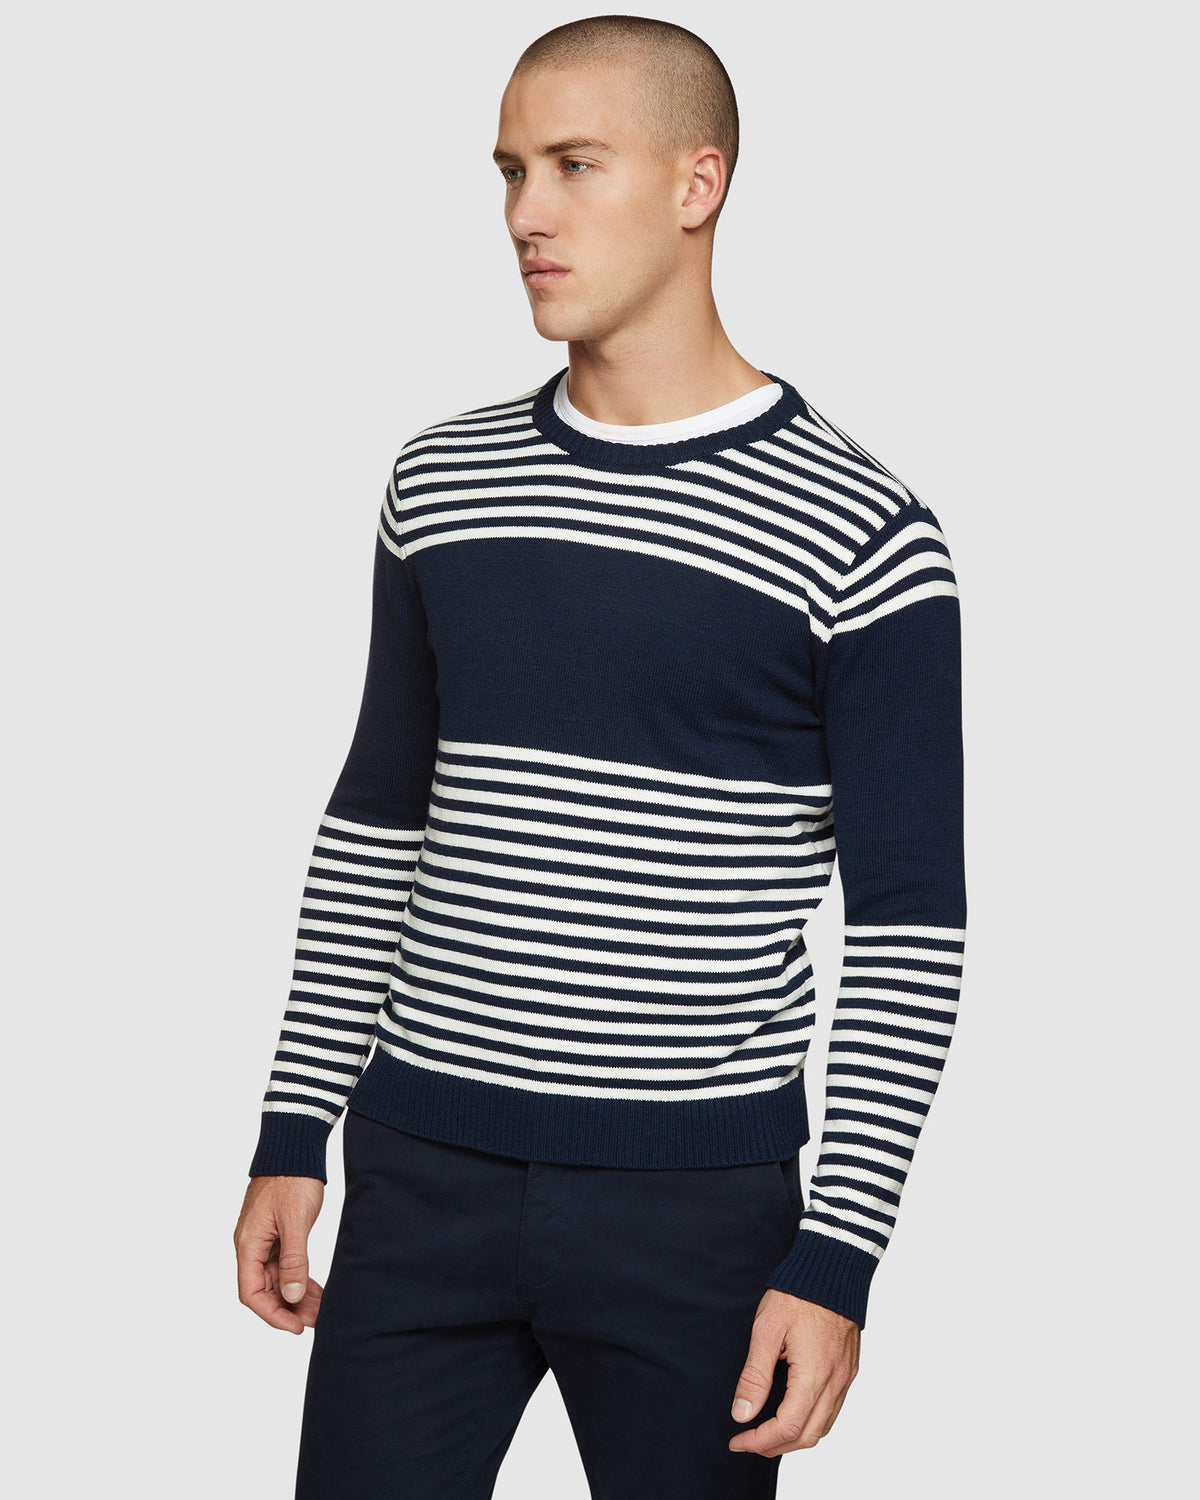 LUKA STRIPED CREW NECK PULLOVER